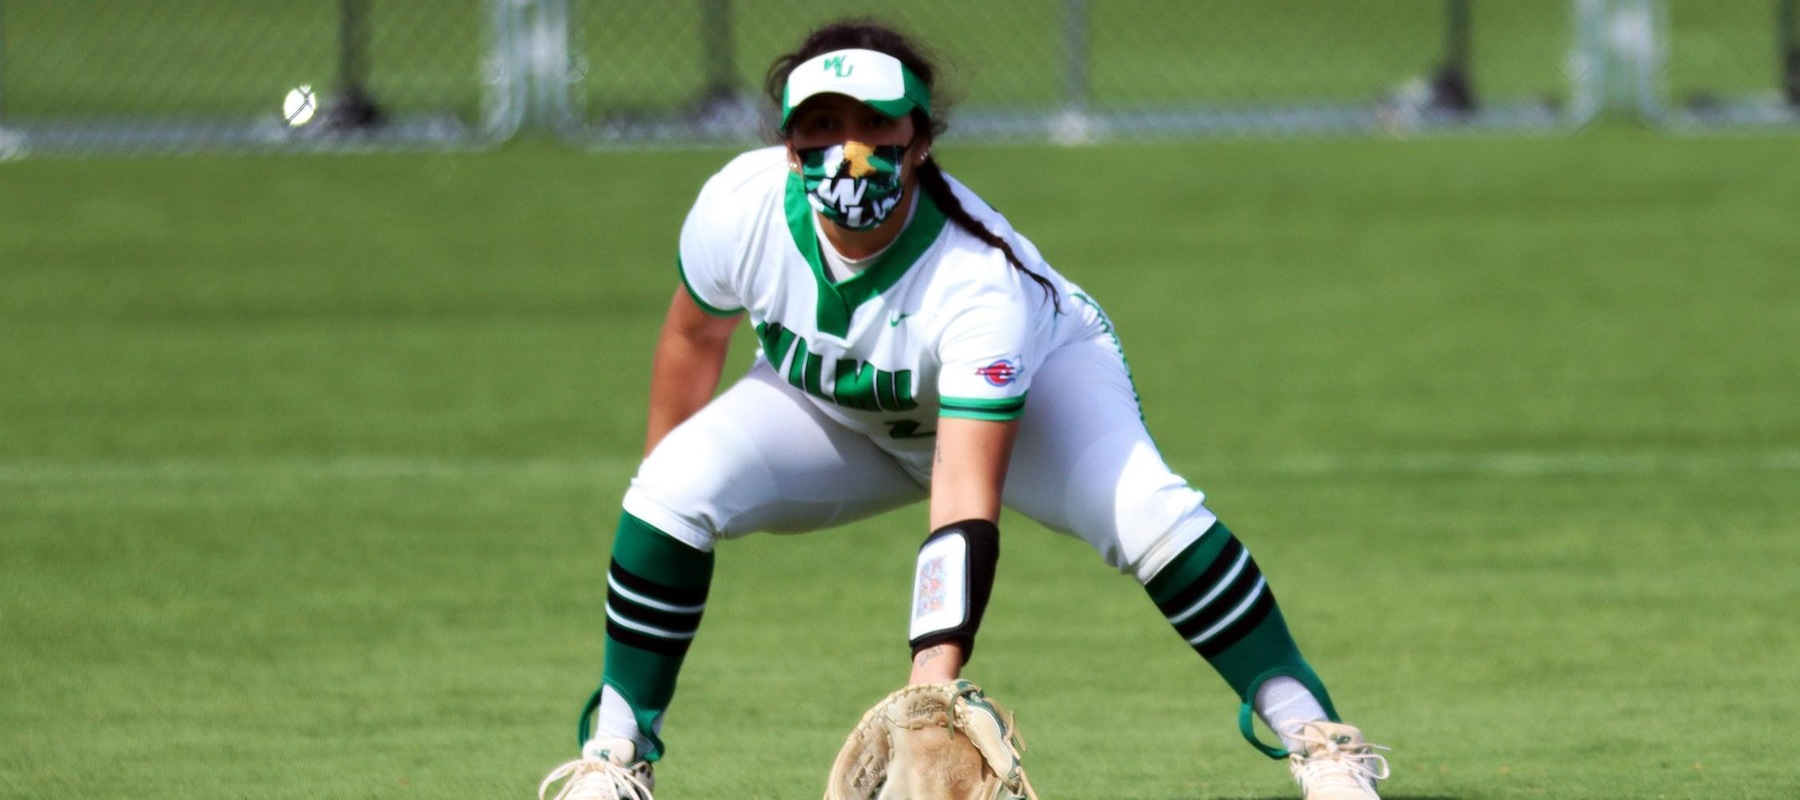 File photo of Alyssa Velasquez who had two hits in each game against Caldwell. Copyright 2021; Wilmington University. All rights reserved. Photo by Dan Lauletta. March 27, 2021 at Felician.